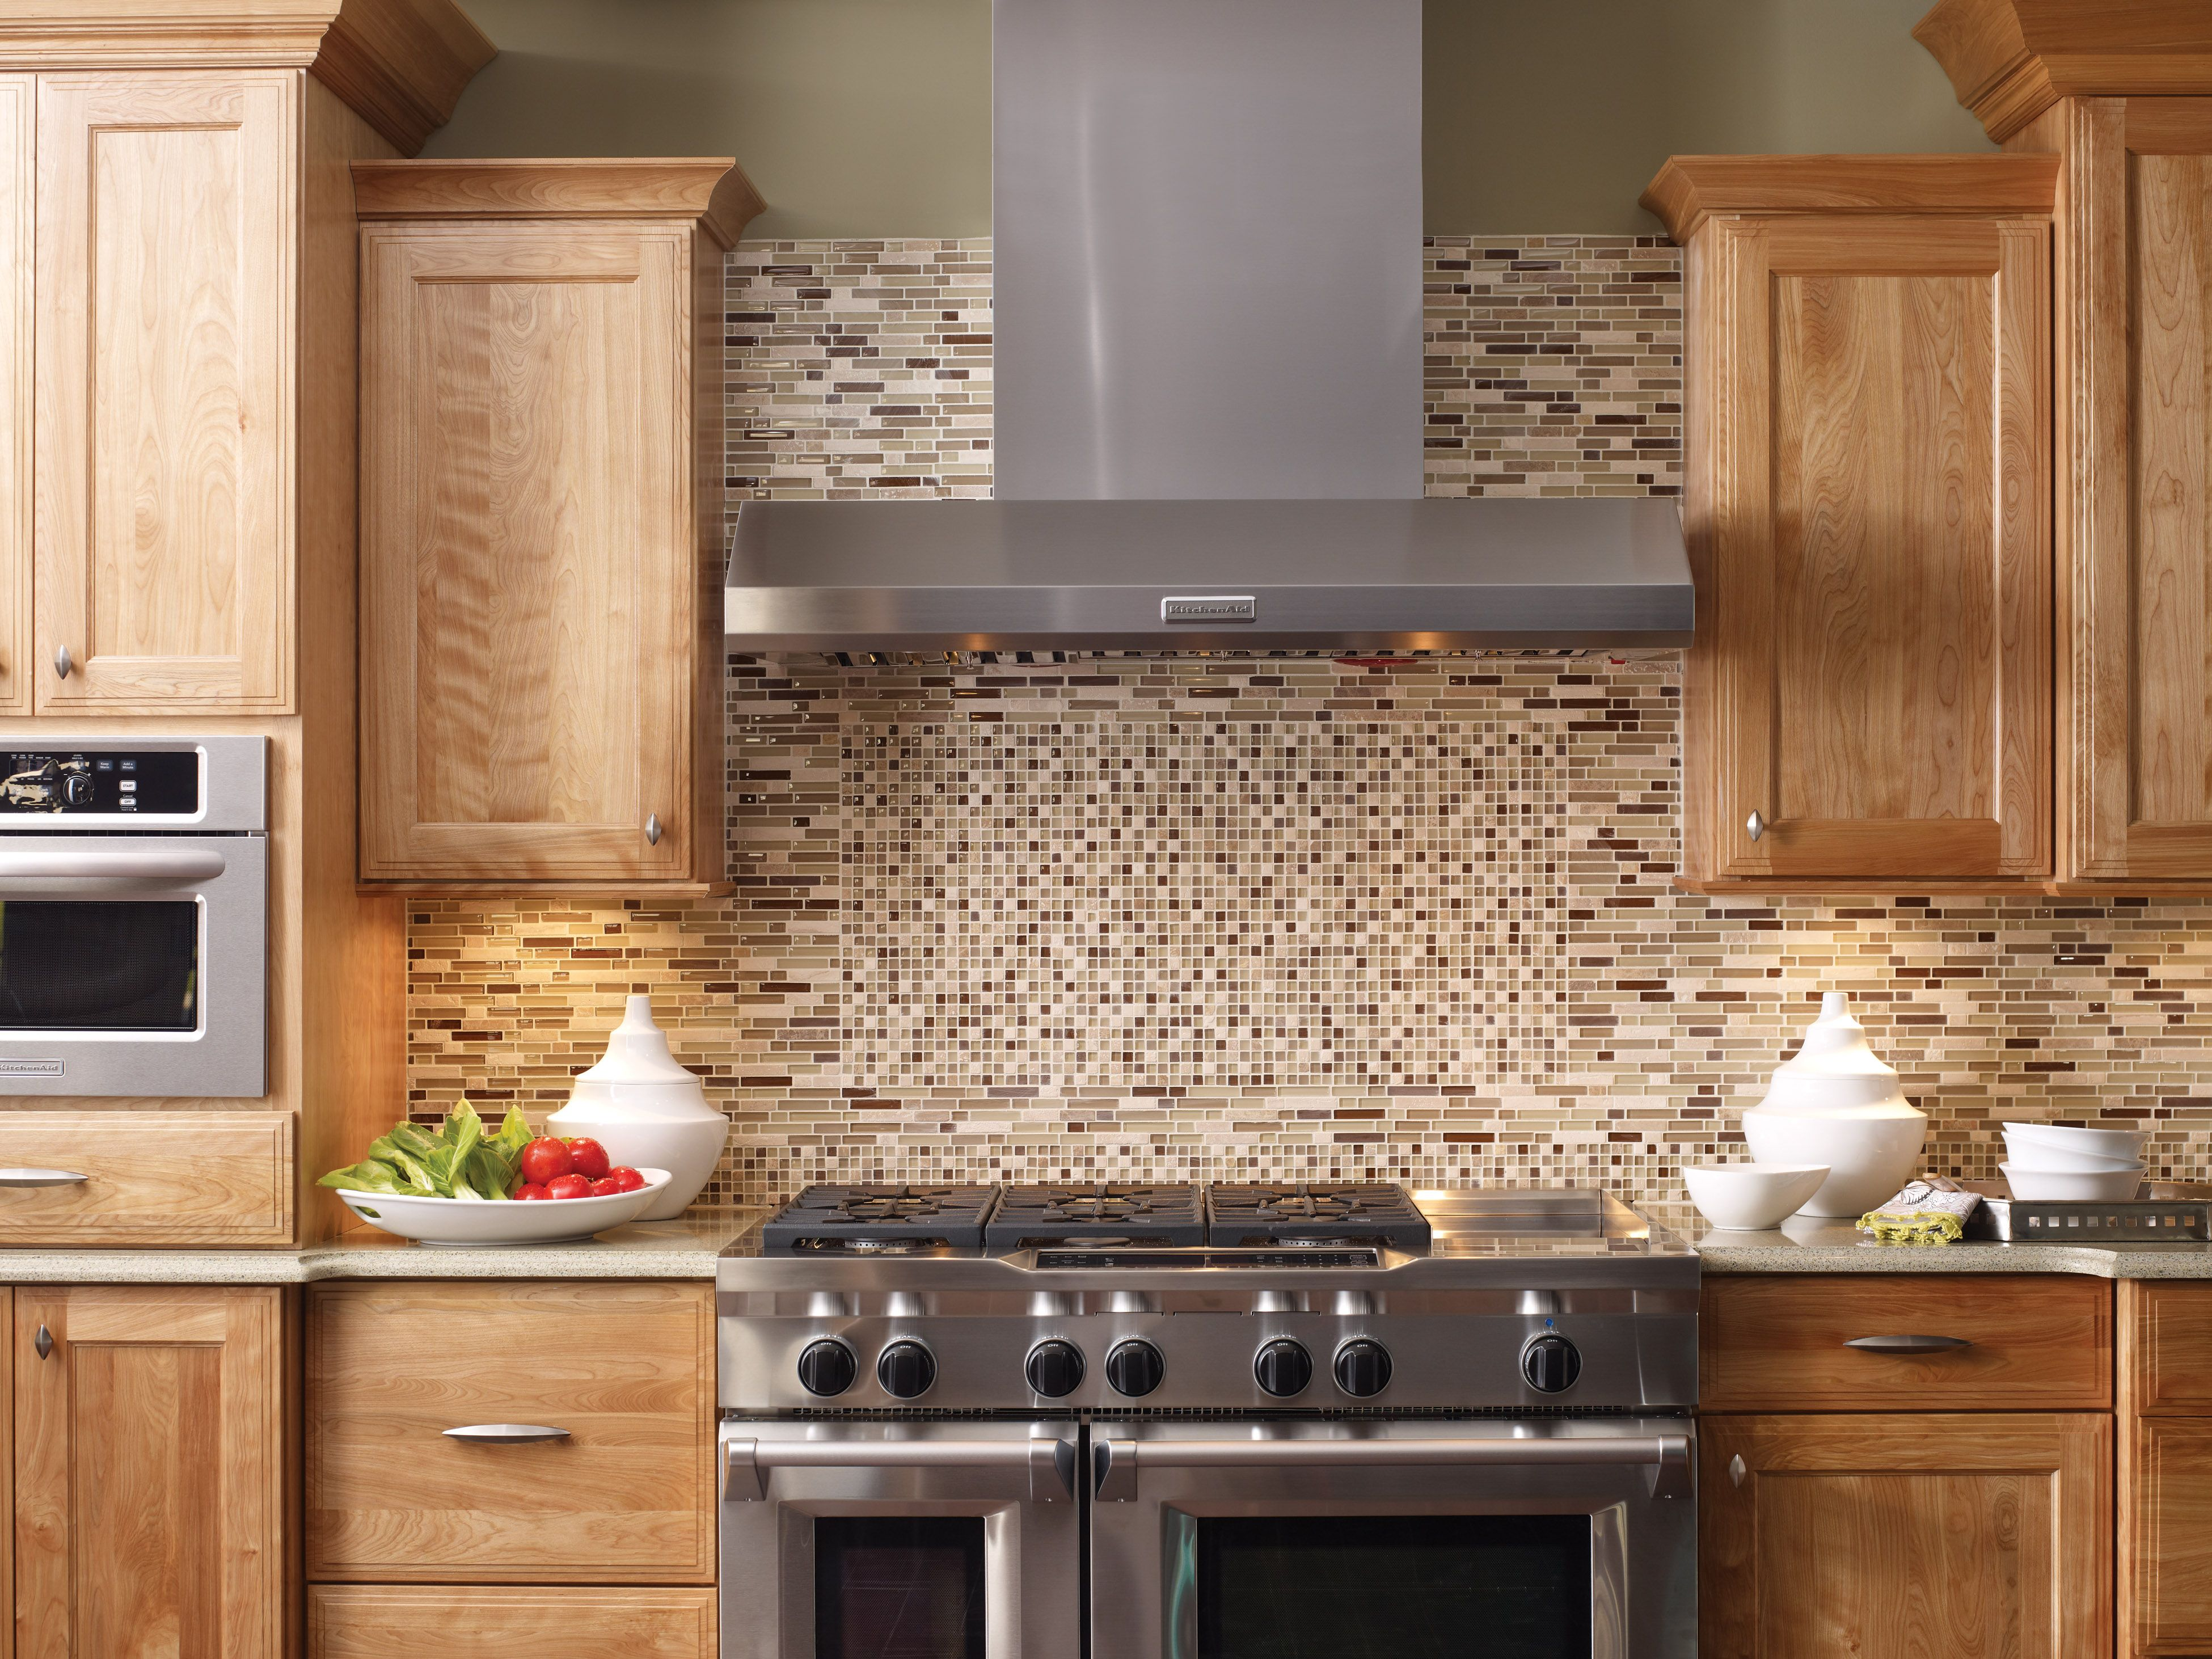 Glass stone mosaic kitchen backsplash photo marazzi pictures to pin on - Beautiful Glass Tile Backsplash From Mohawk Tile